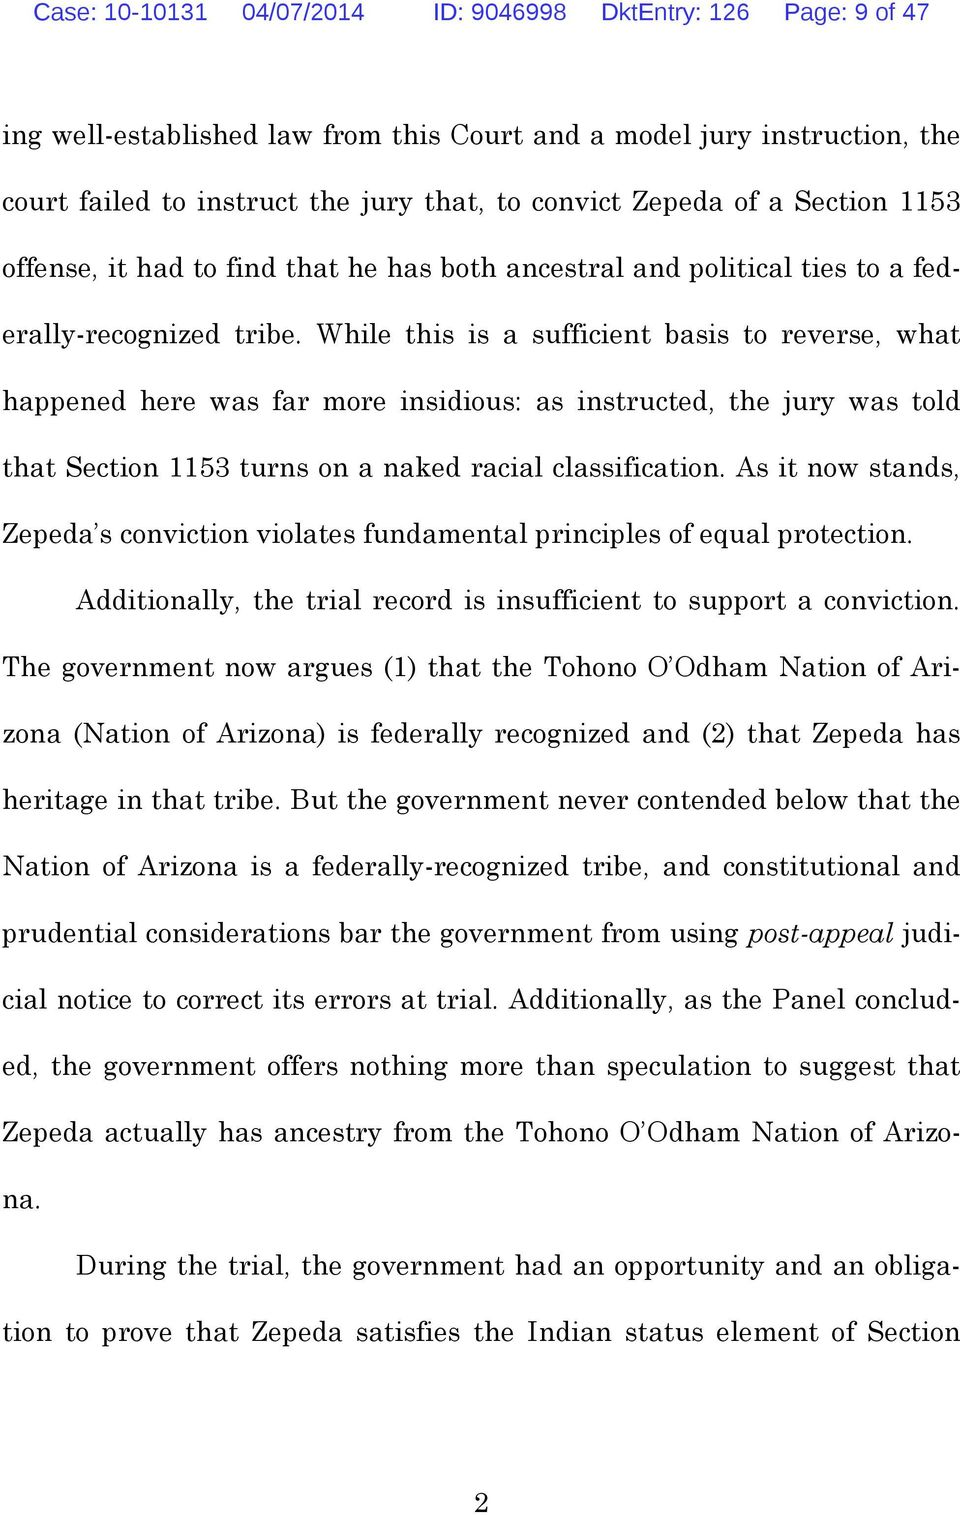 While this is a sufficient basis to reverse, what happened here was far more insidious: as instructed, the jury was told that Section 1153 turns on a naked racial classification.